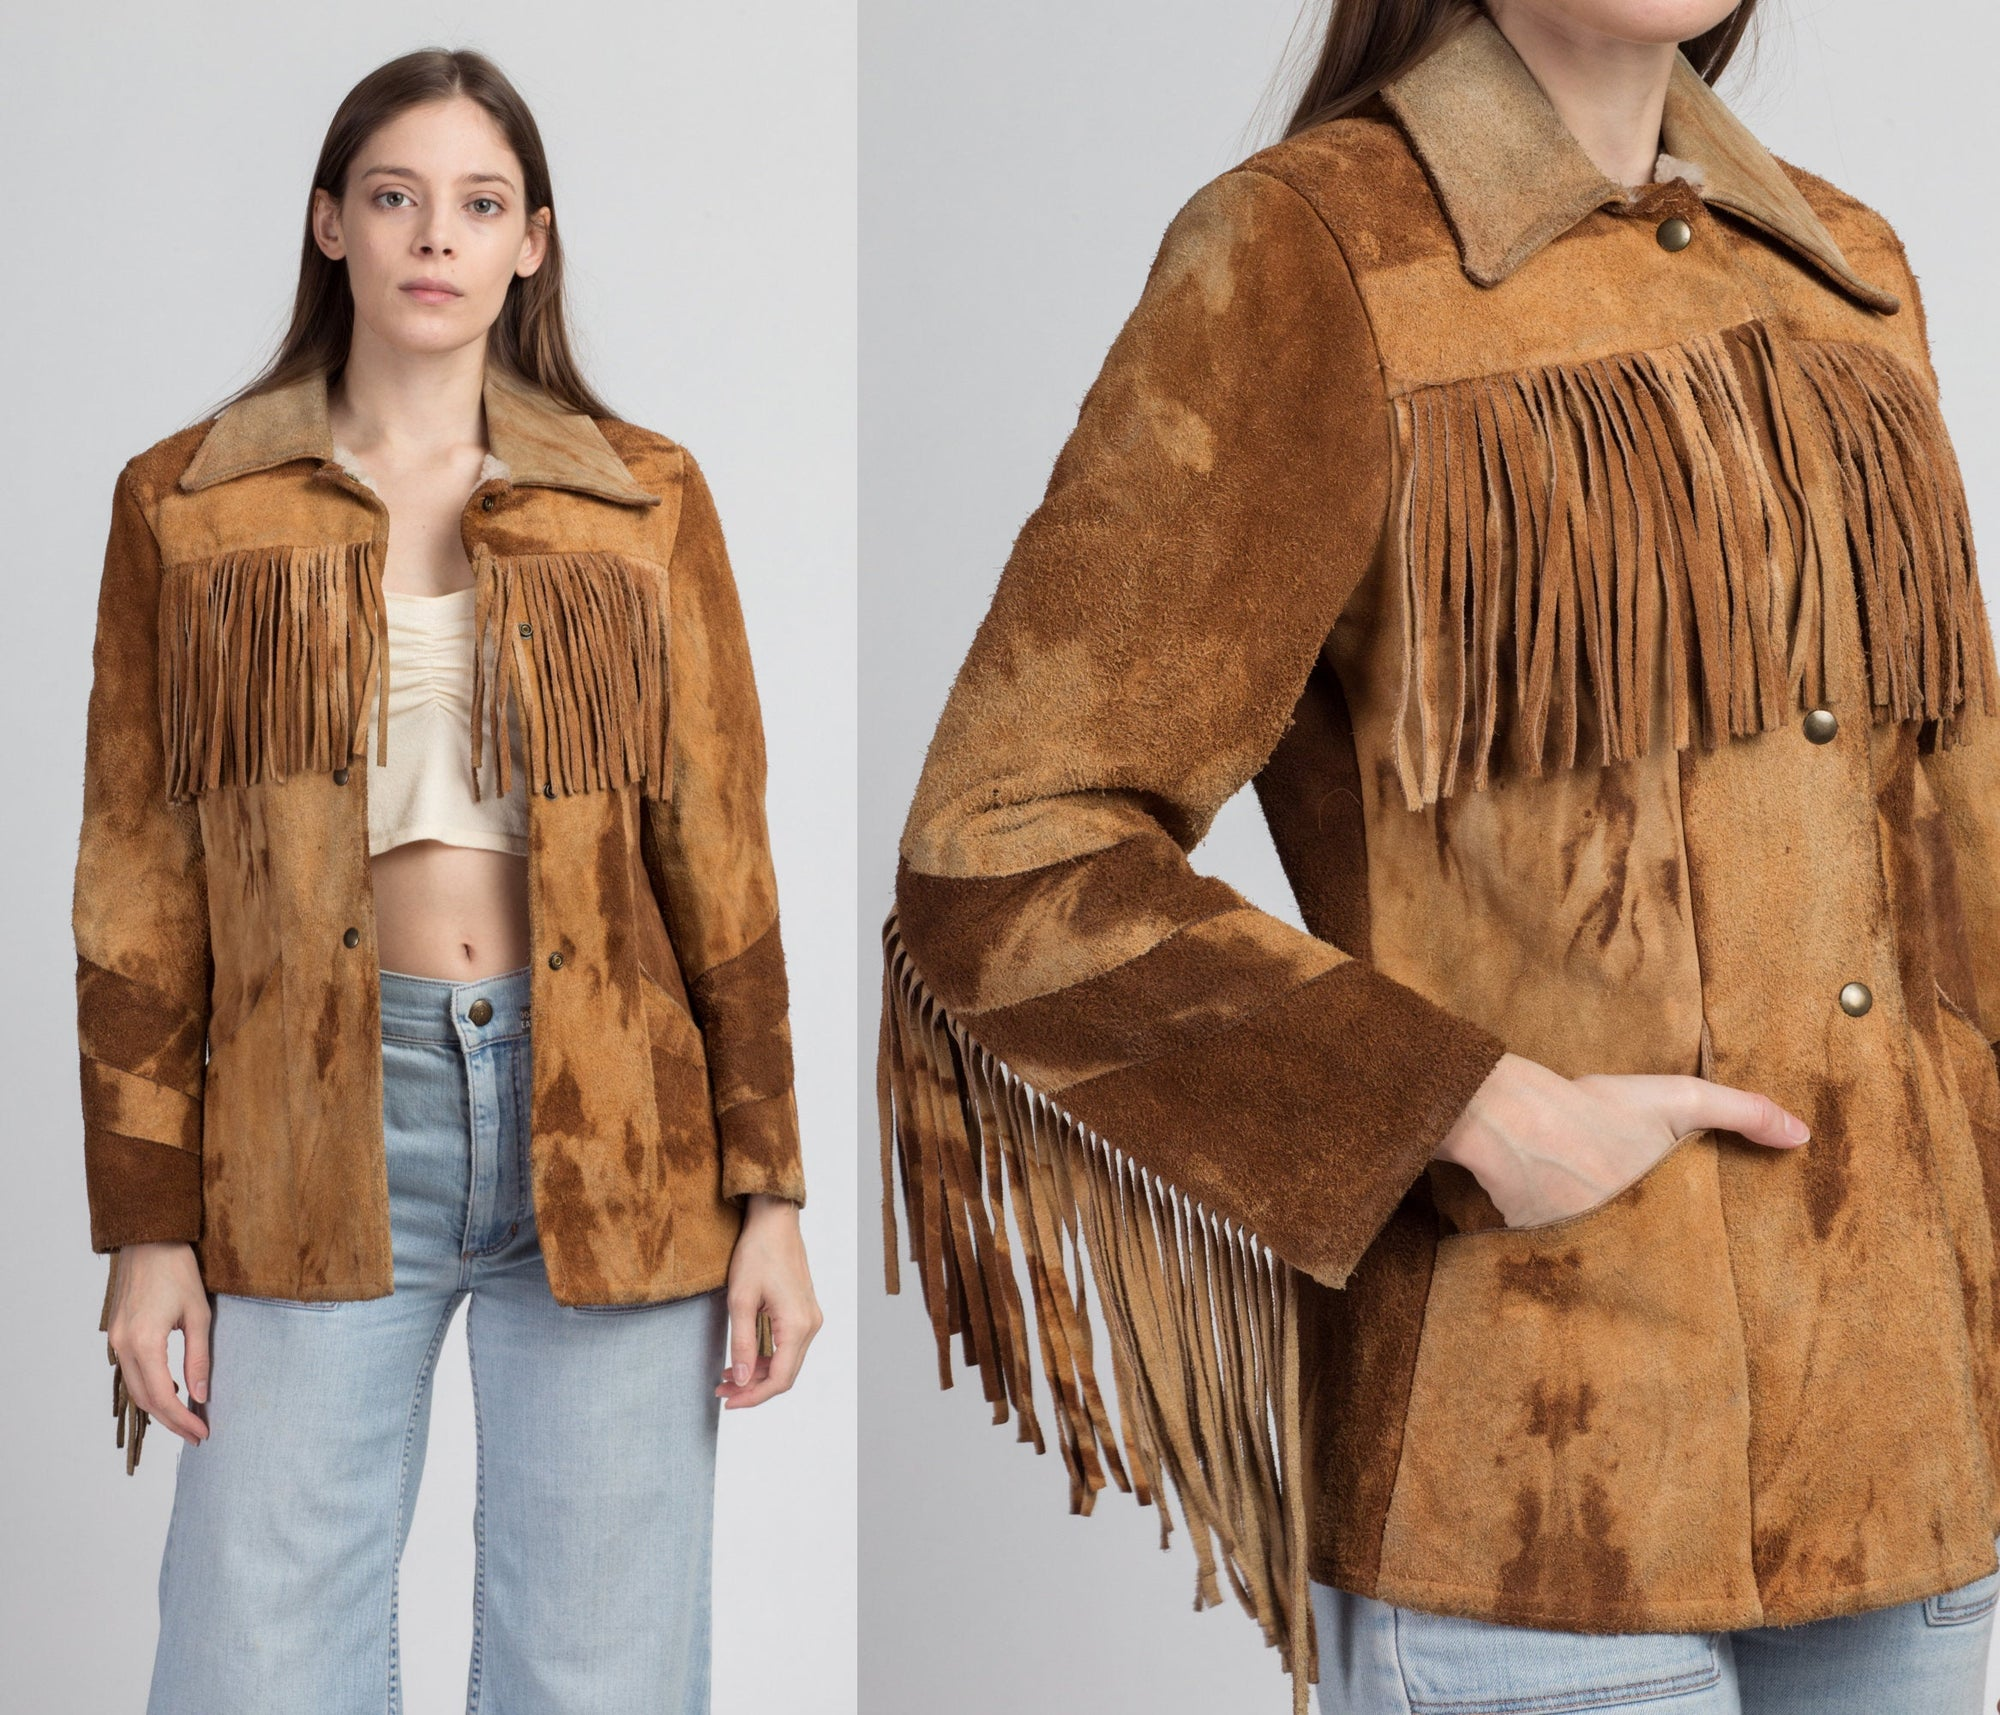 60s 70s Brown Suede Fringe Jacket - Men's XS, Women's Small